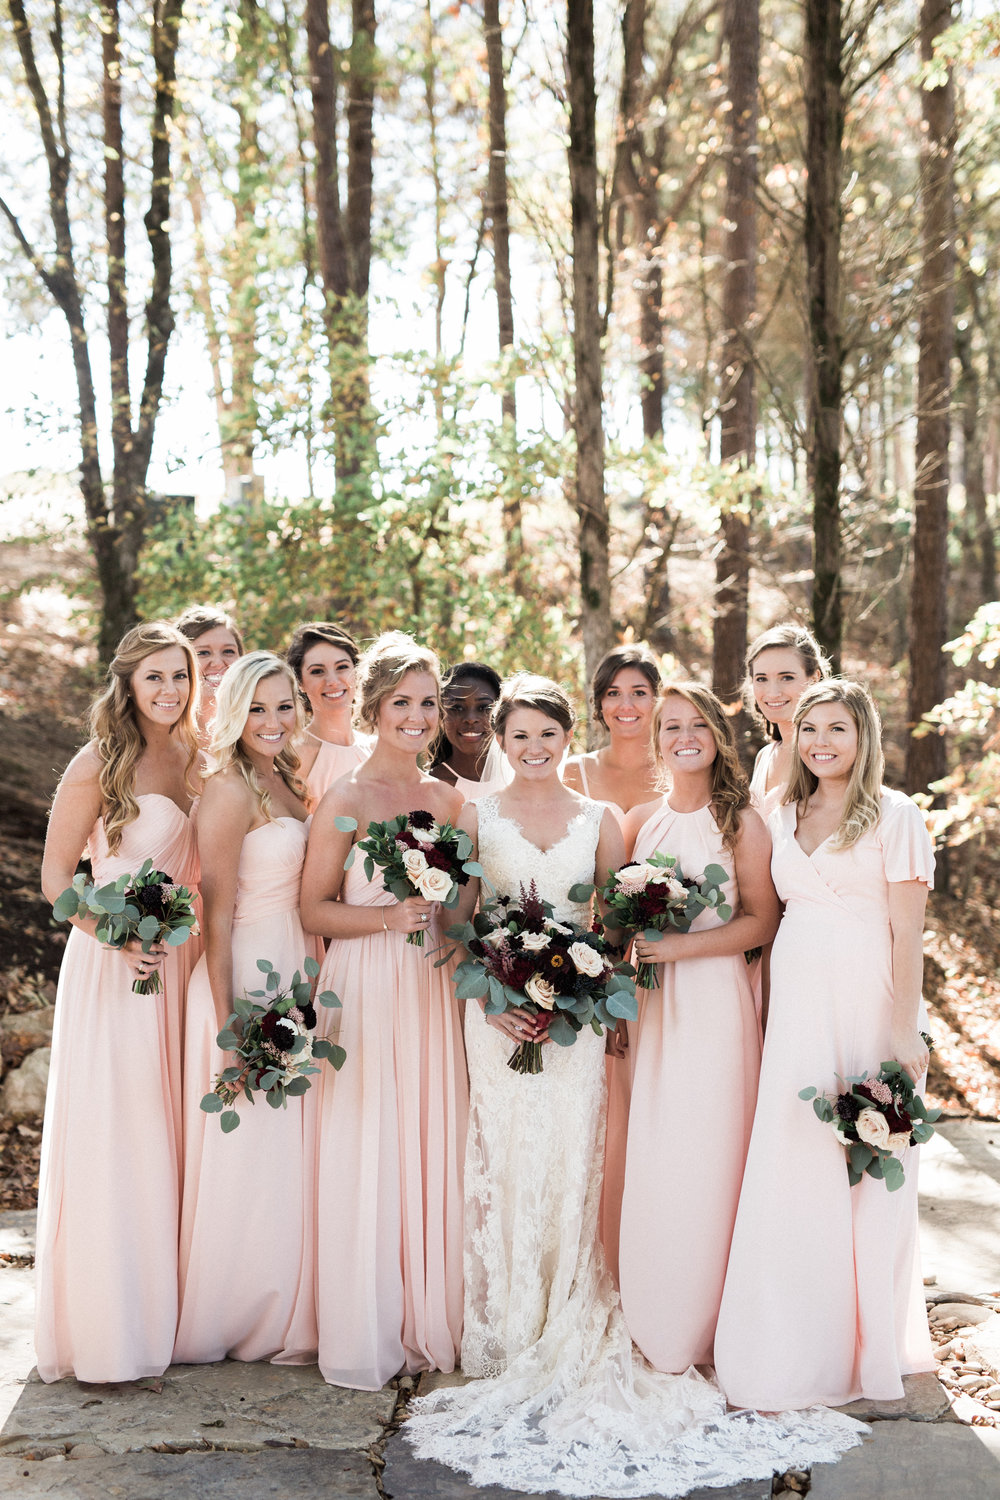 Mikaela Hamilton-Hannah & Joe- bridal party-3.jpg